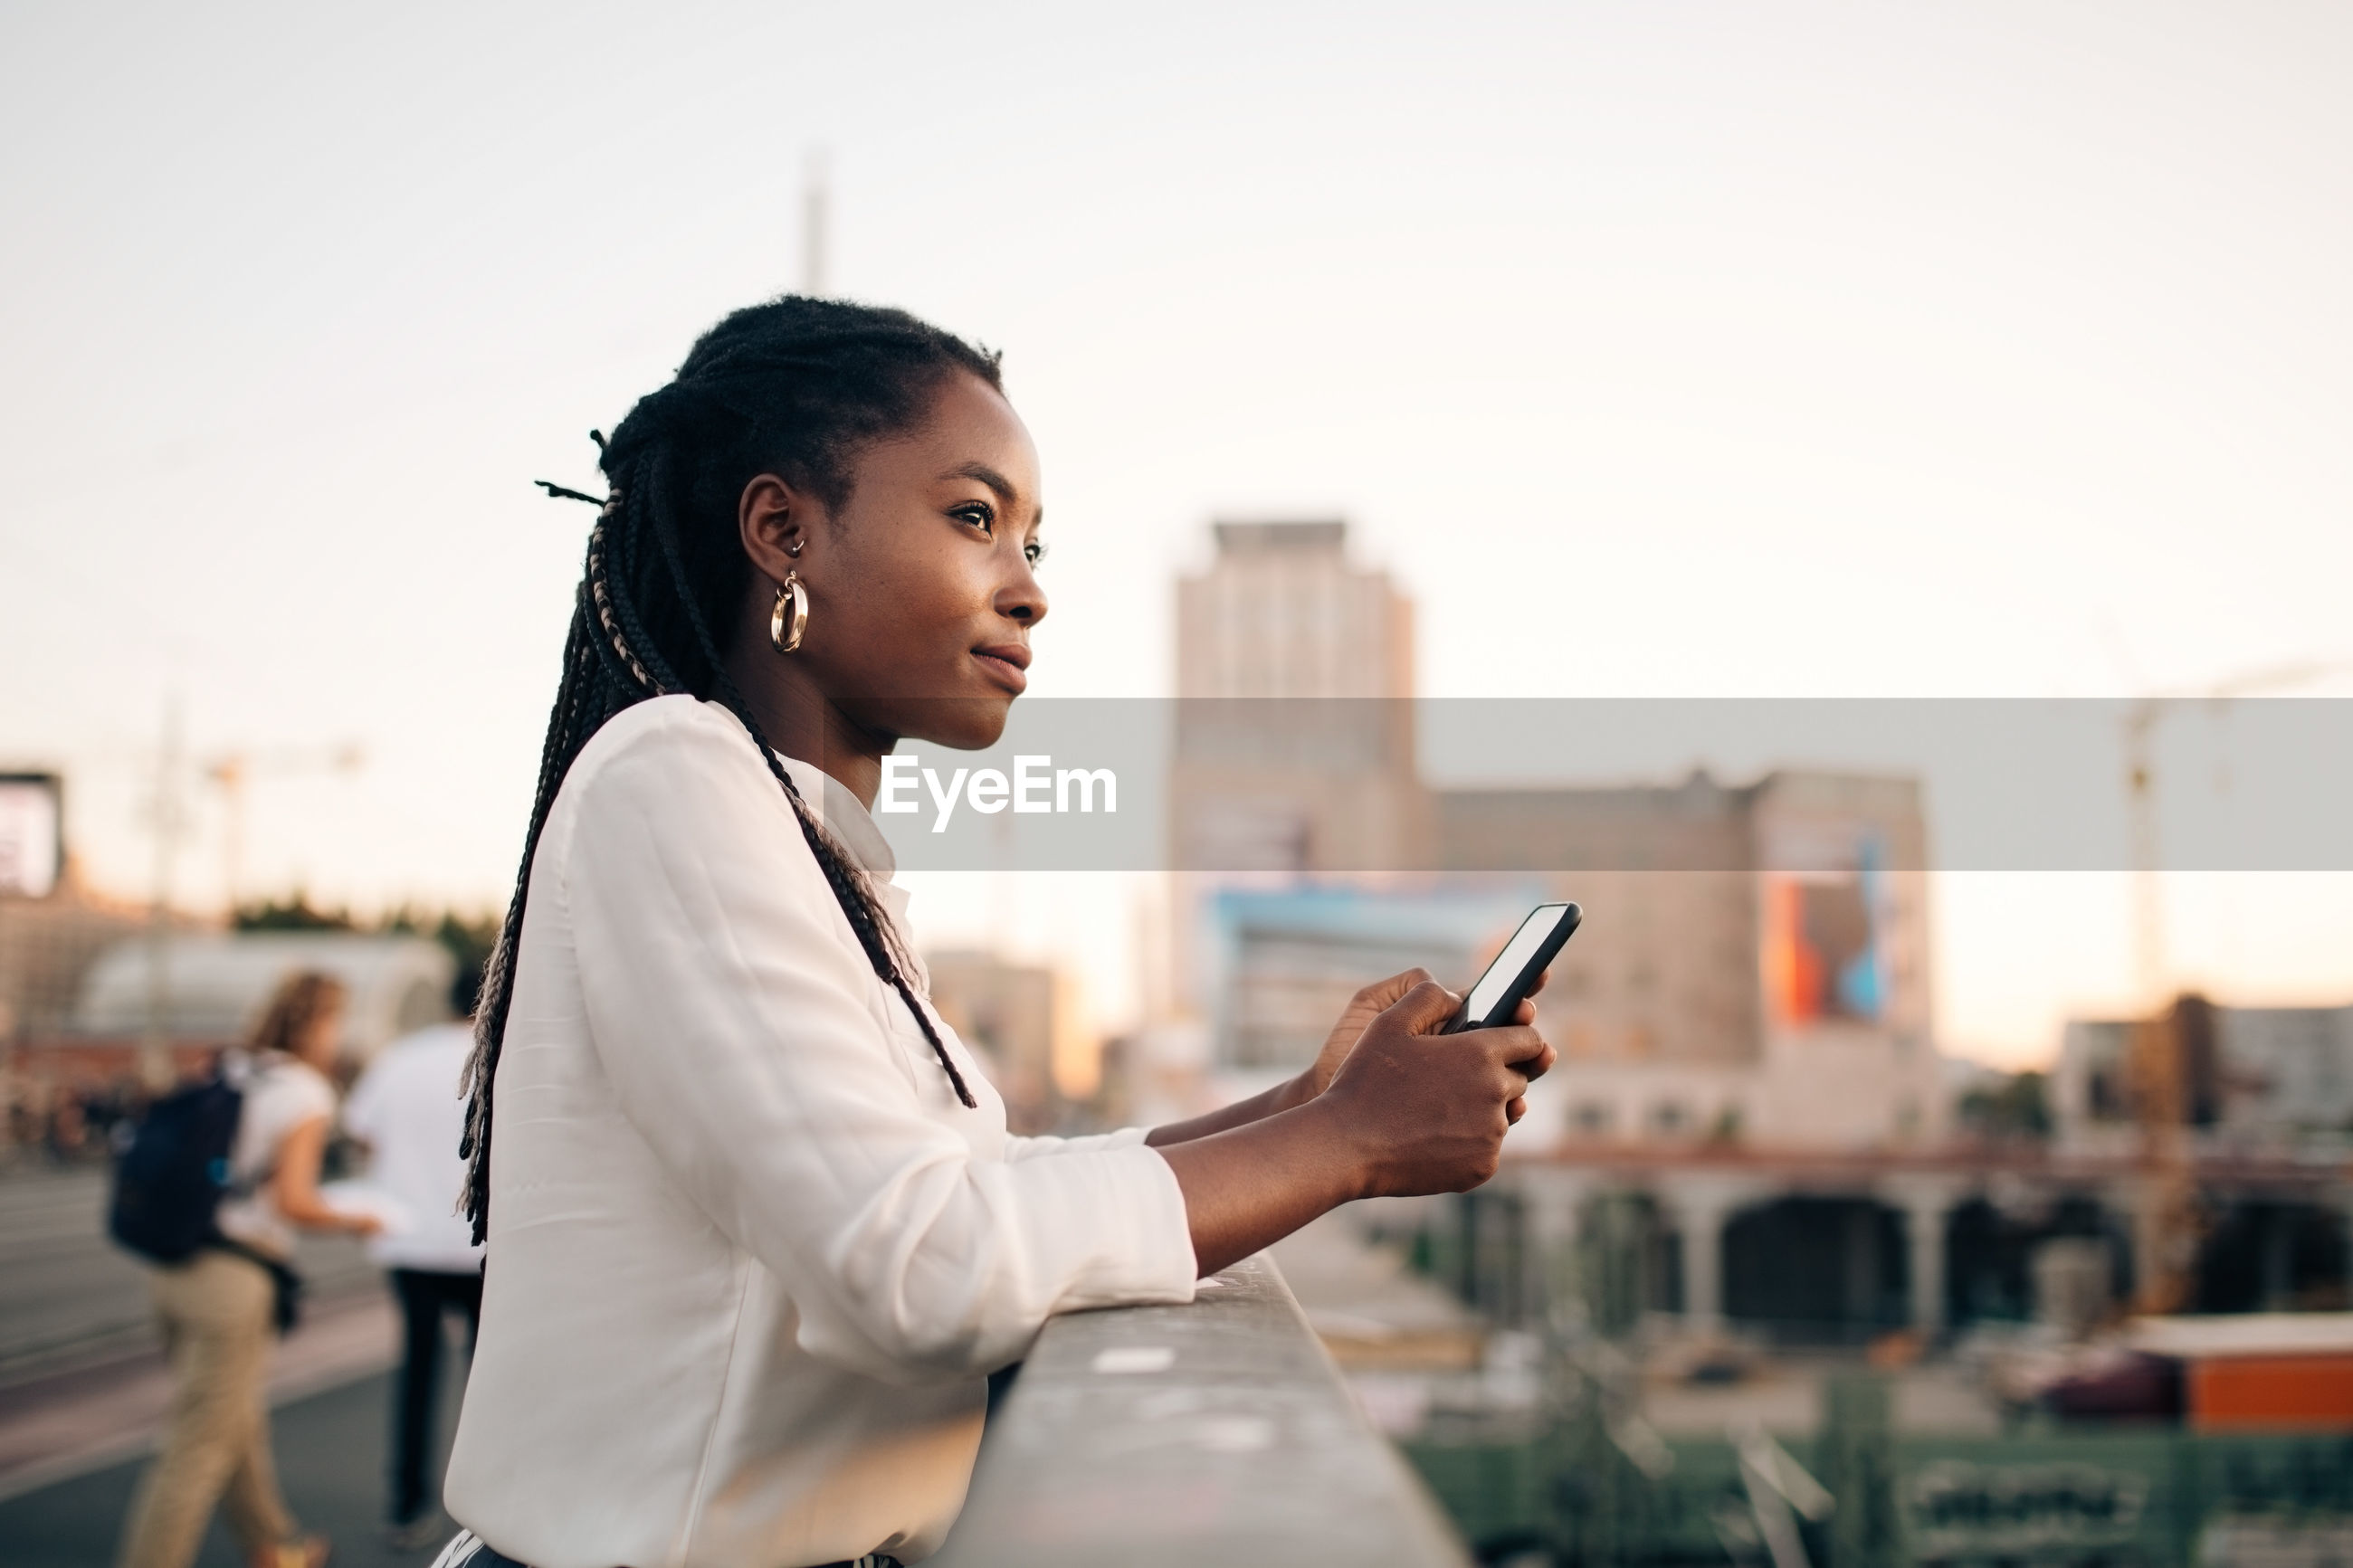 SIDE VIEW OF YOUNG WOMAN USING SMART PHONE AGAINST SKY